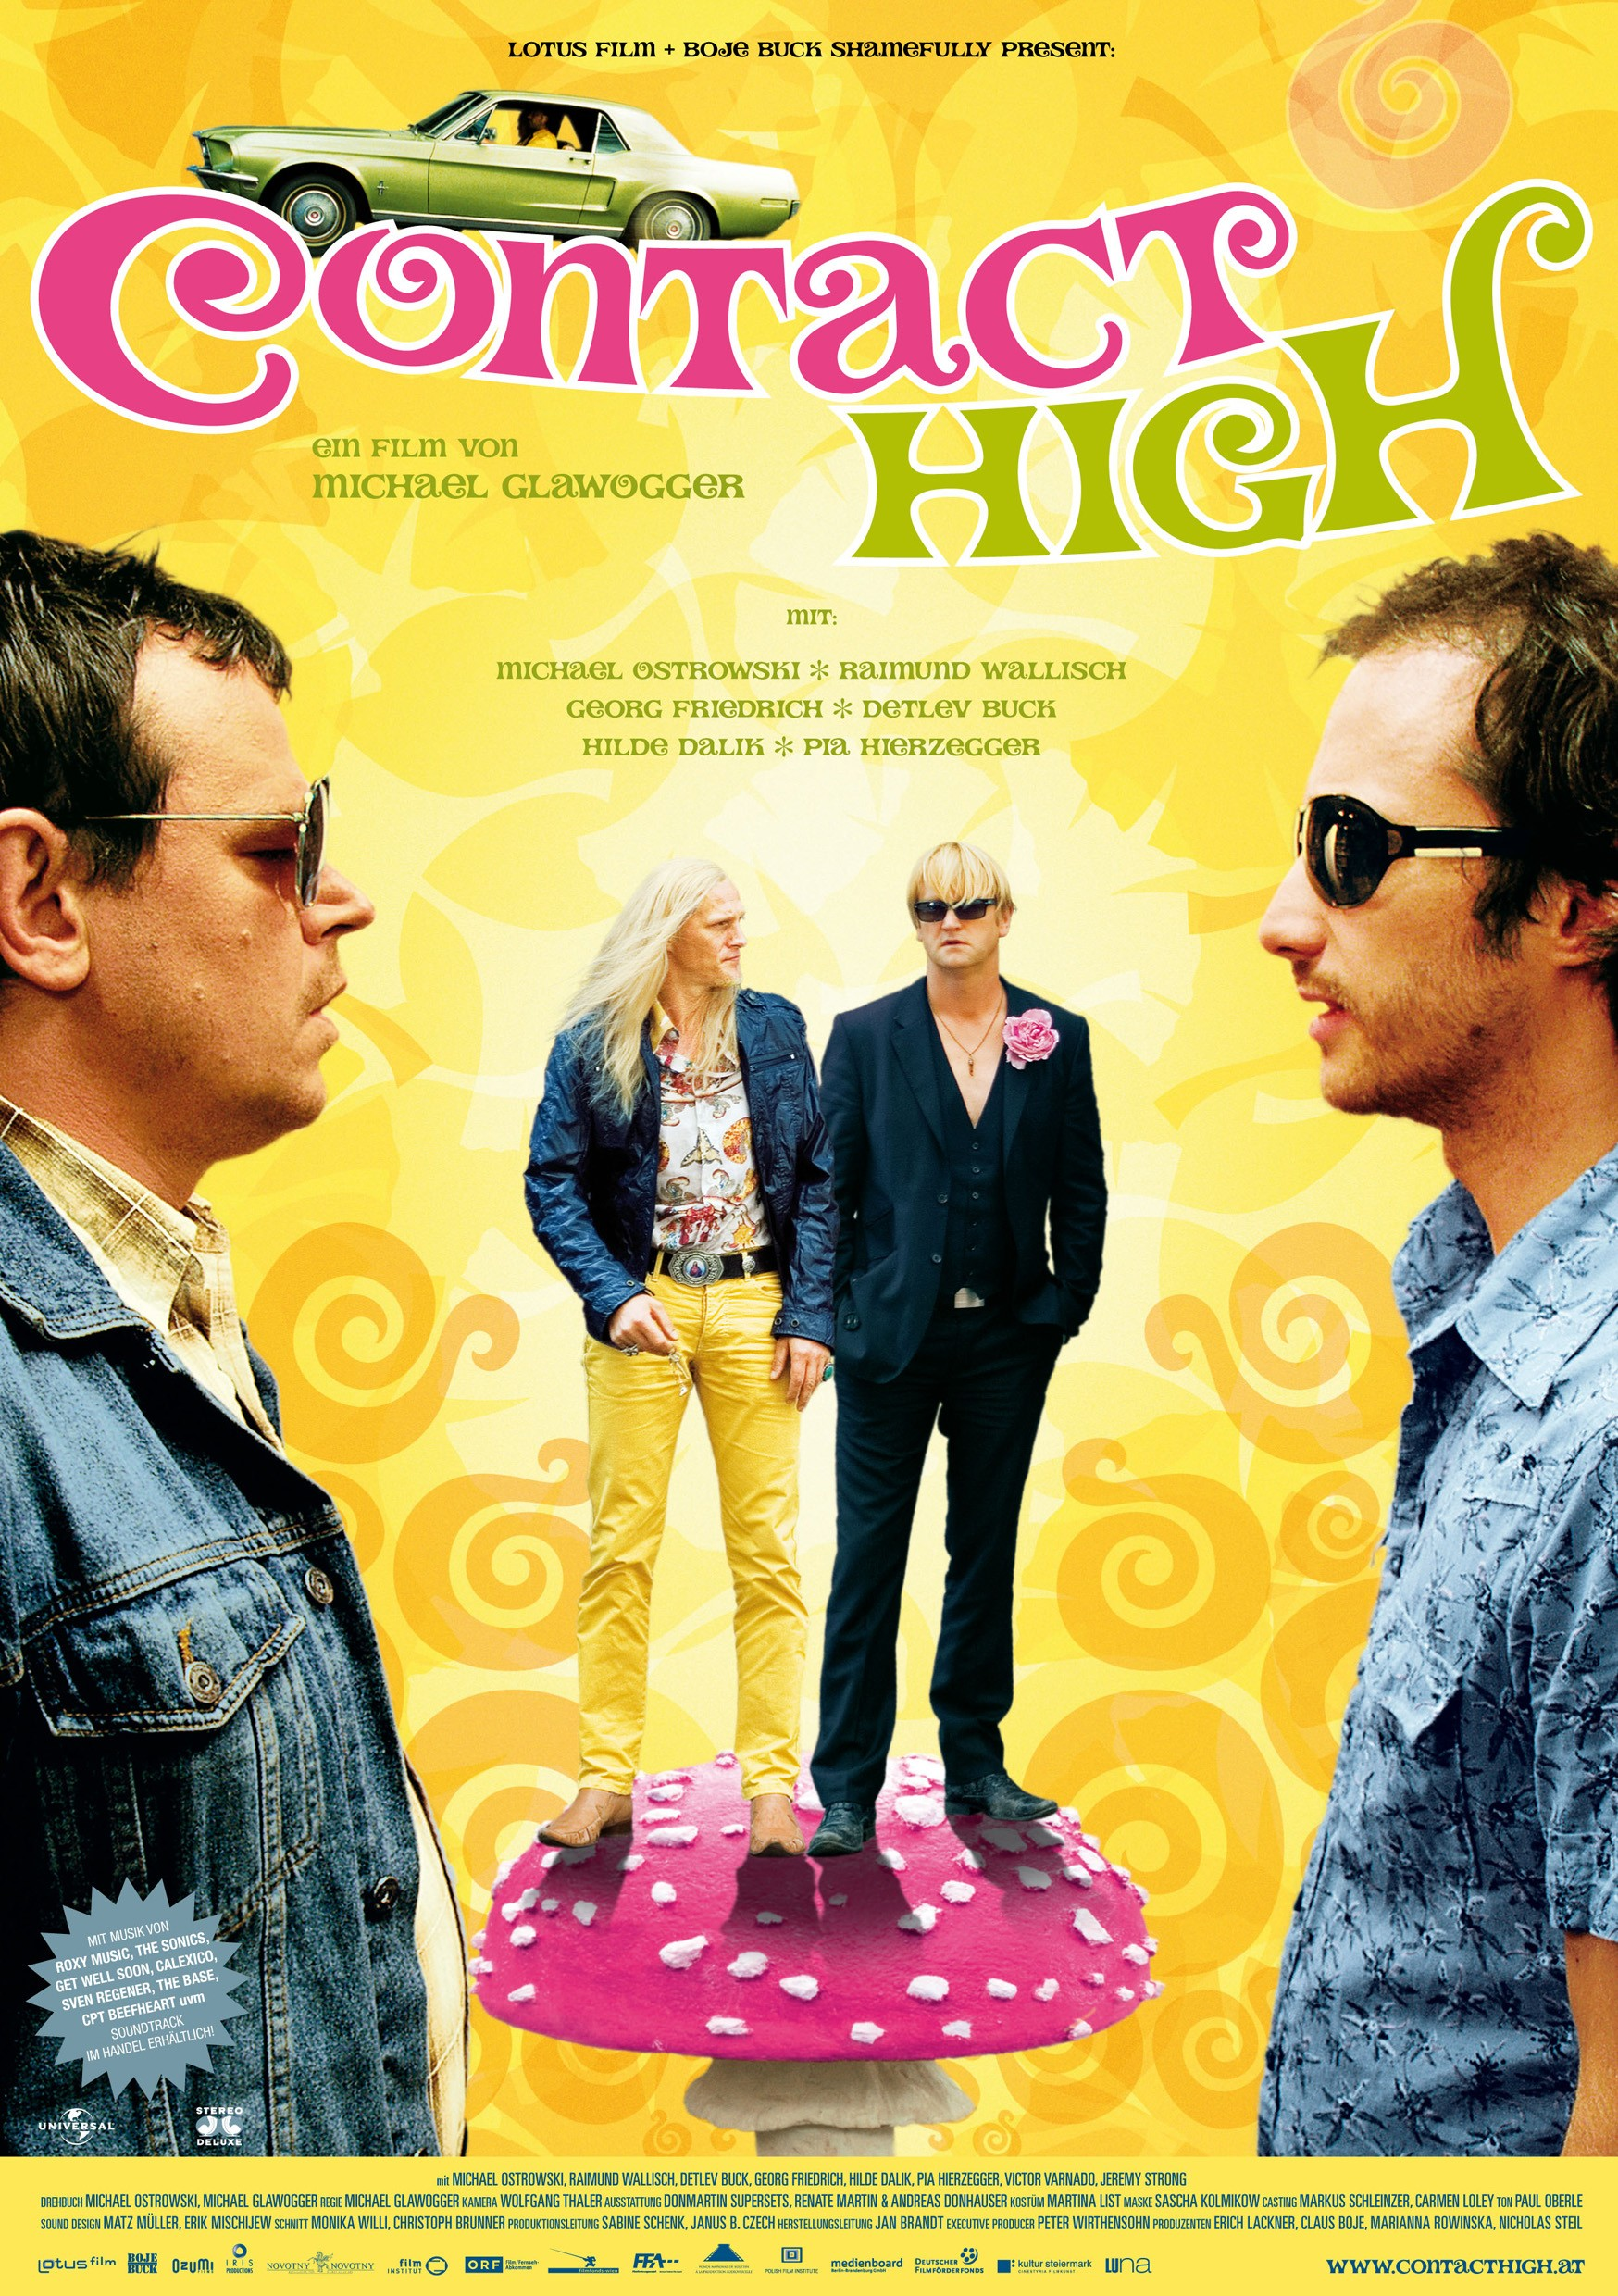 Where Nacktschnecken was a bit of a stoner comedy, Contact High is completely there, which is not the development I personally would have hoped for.